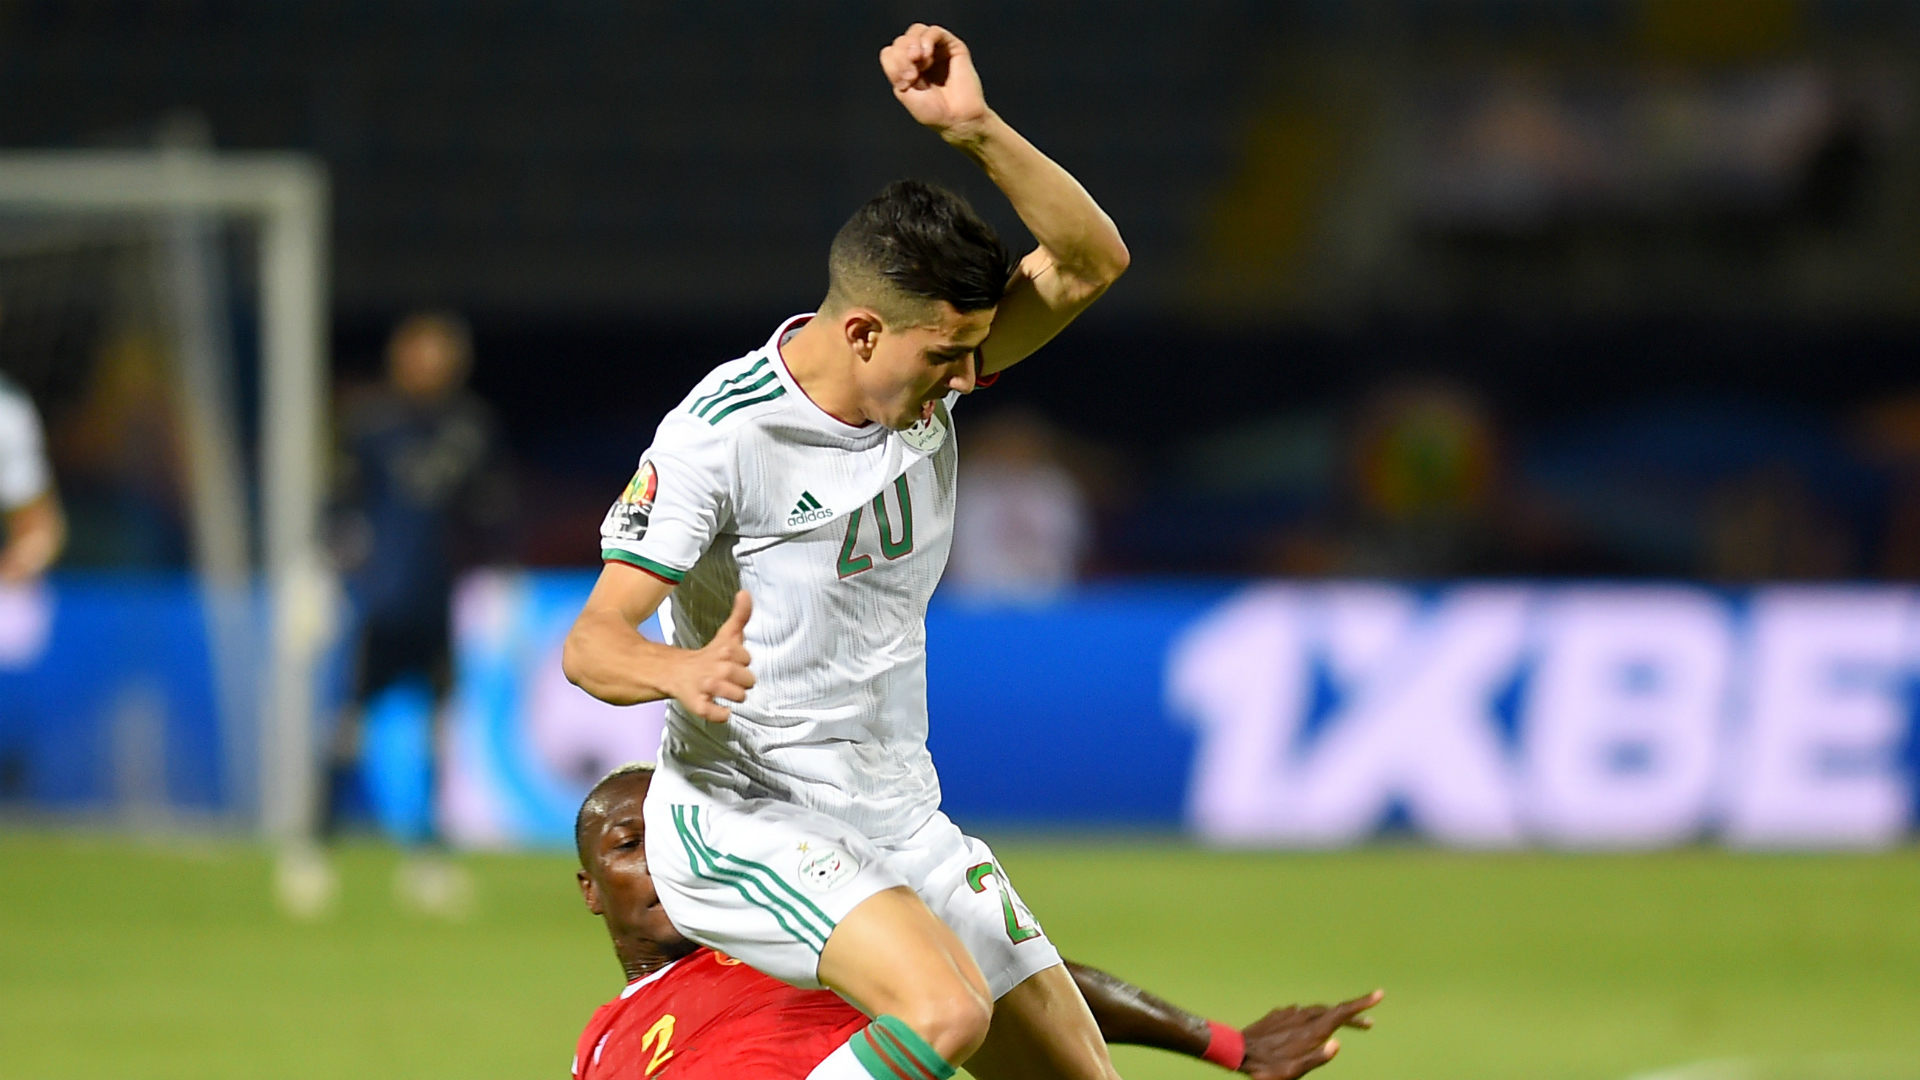 Afcon 2019: Blow for Algeria as injury rules Youcef Atal out of tournament